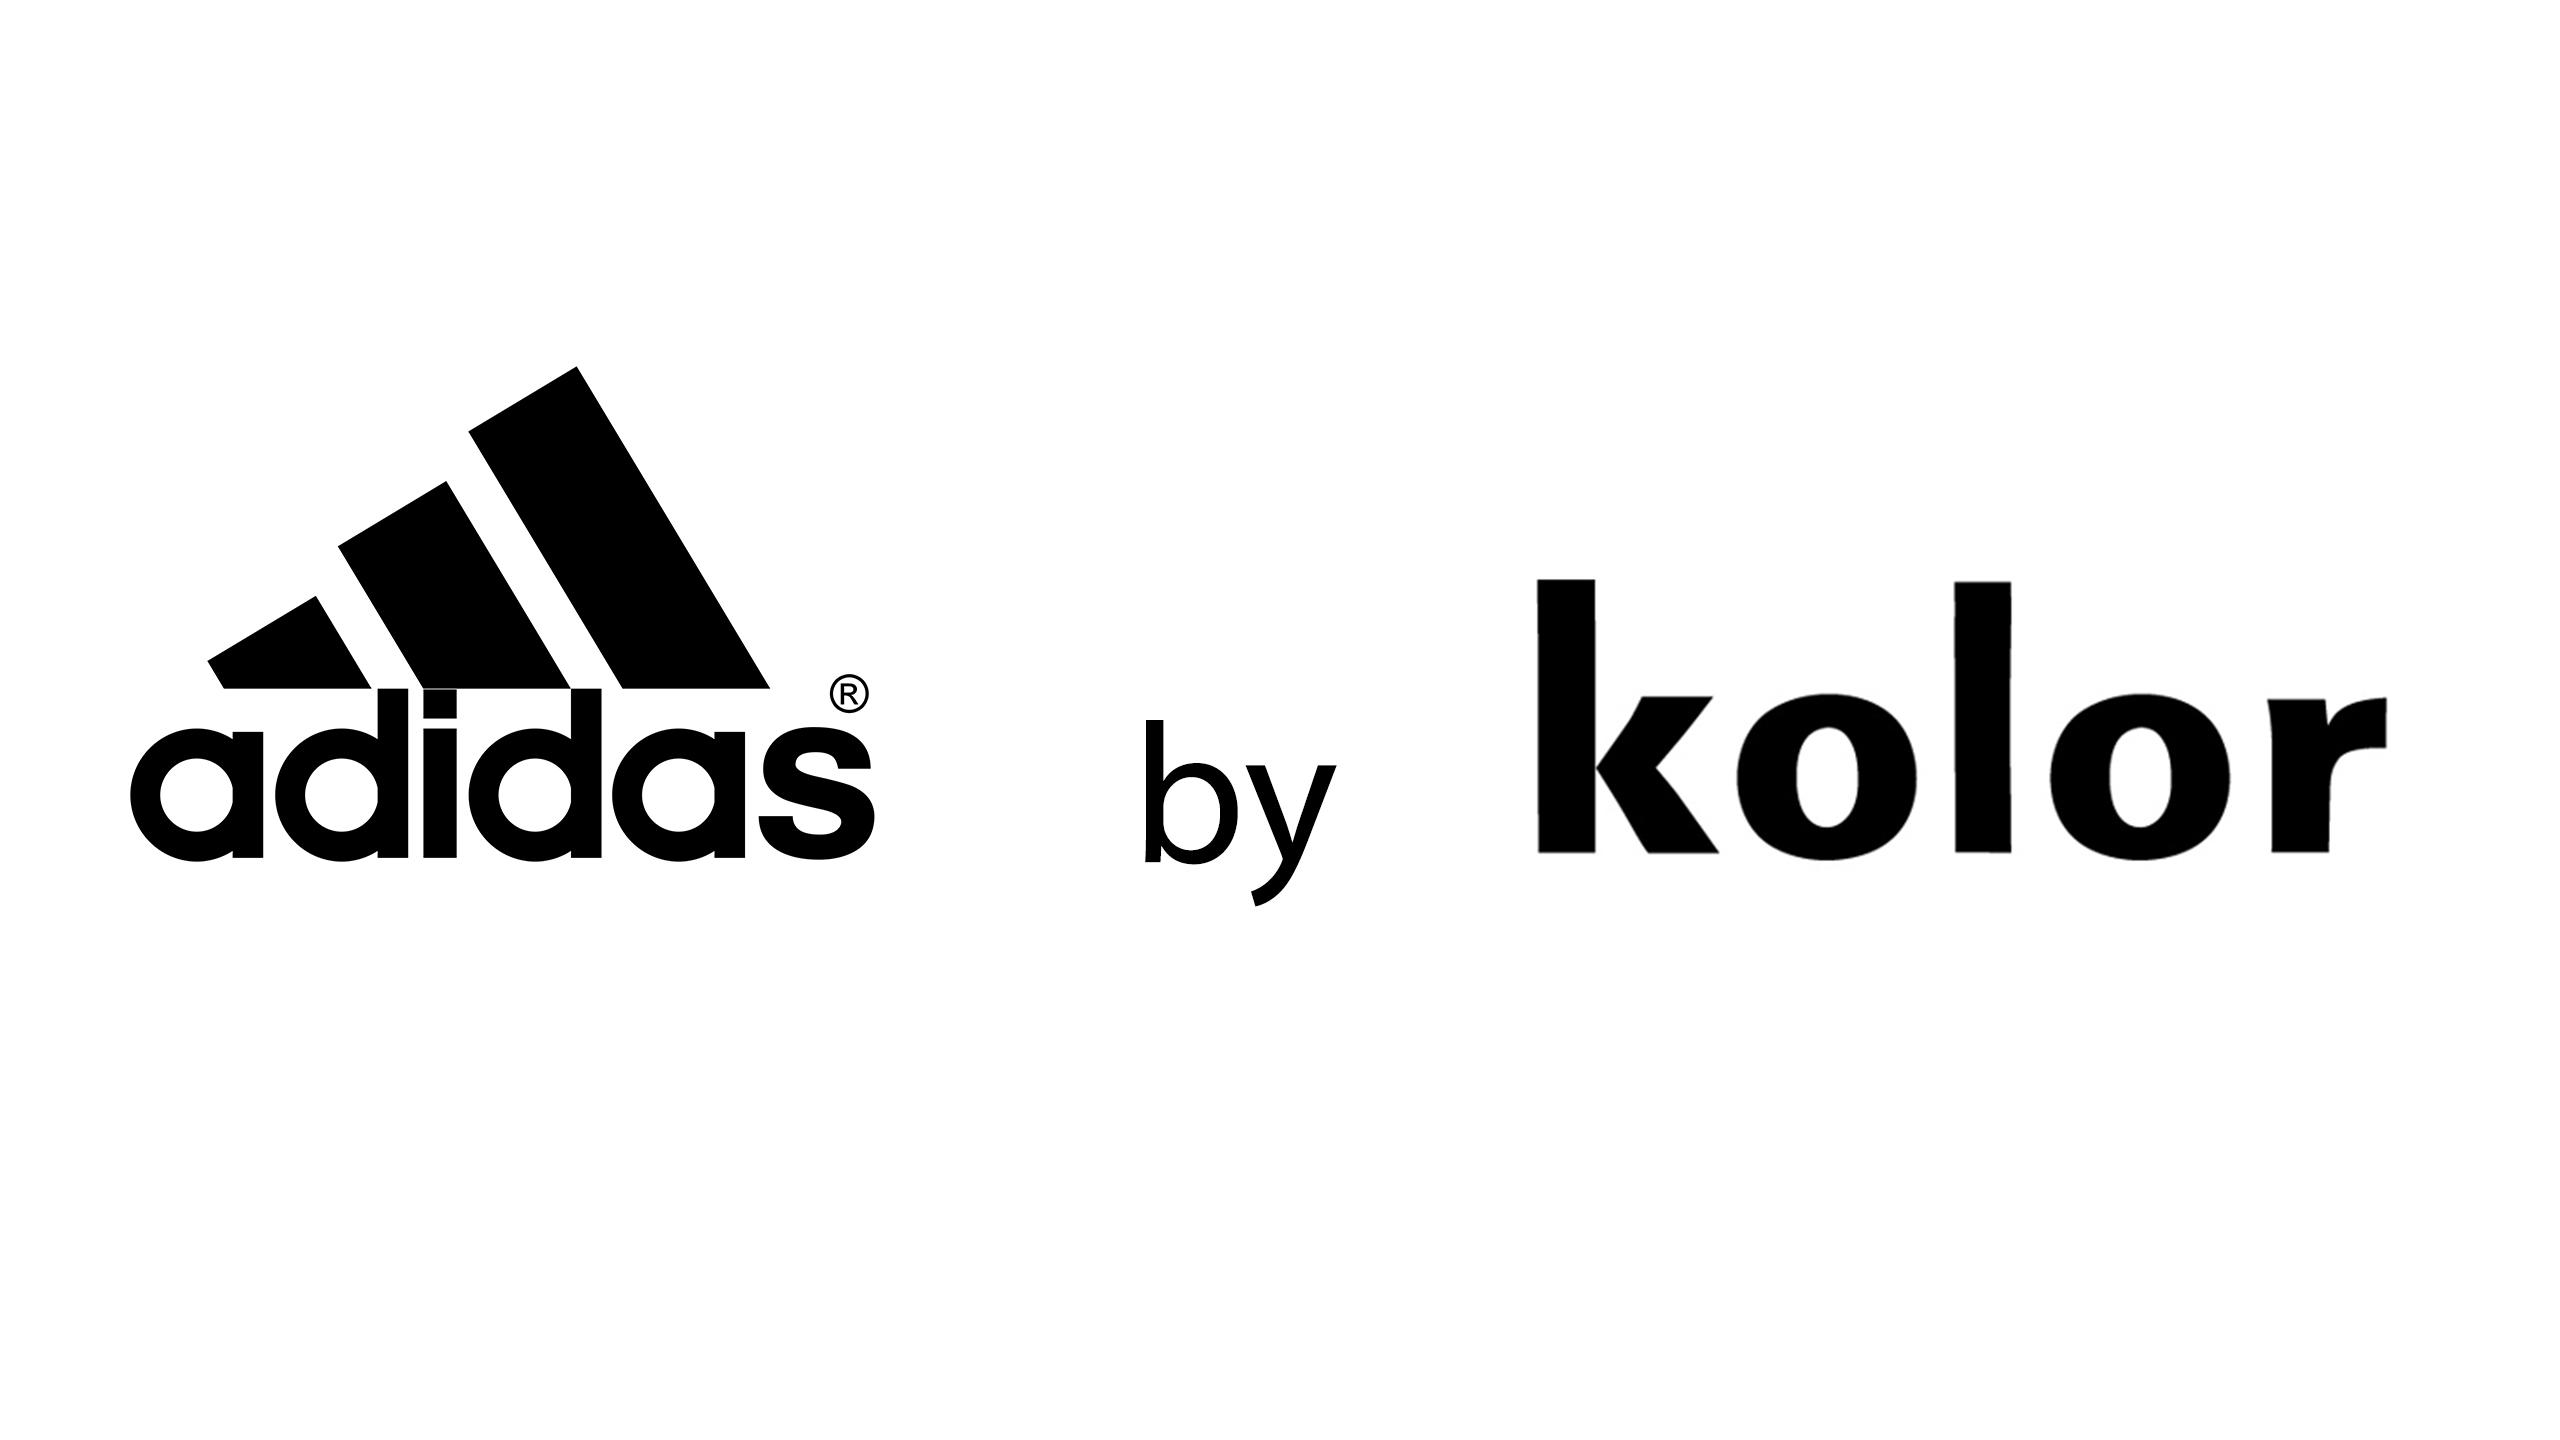 {'liked': 0L, 'description': u'Adidas\u2019s latest collaboration sees the sportswear label team up with Japanese fashion house Kolor. The capsule collection fuses Adidas\u2019s technical expertise with Kolor\u2019s innovative cuts, resulting in a range of bold high-performance pieces.', 'fcount': 5, 'logo': u'https://d1lq6ohuxk085y.cloudfront.net/designer/ADIDAS-BY-KOLOR-1486424943', 'viewed': 2641L, 'category': u'c', 'name': u'ADIDAS BY KOLOR', 'url': 'ADIDAS-BY-KOLOR', 'locname': u'ADIDAS BY KOLOR', 'mcount': 236, 'haswebsite': True}